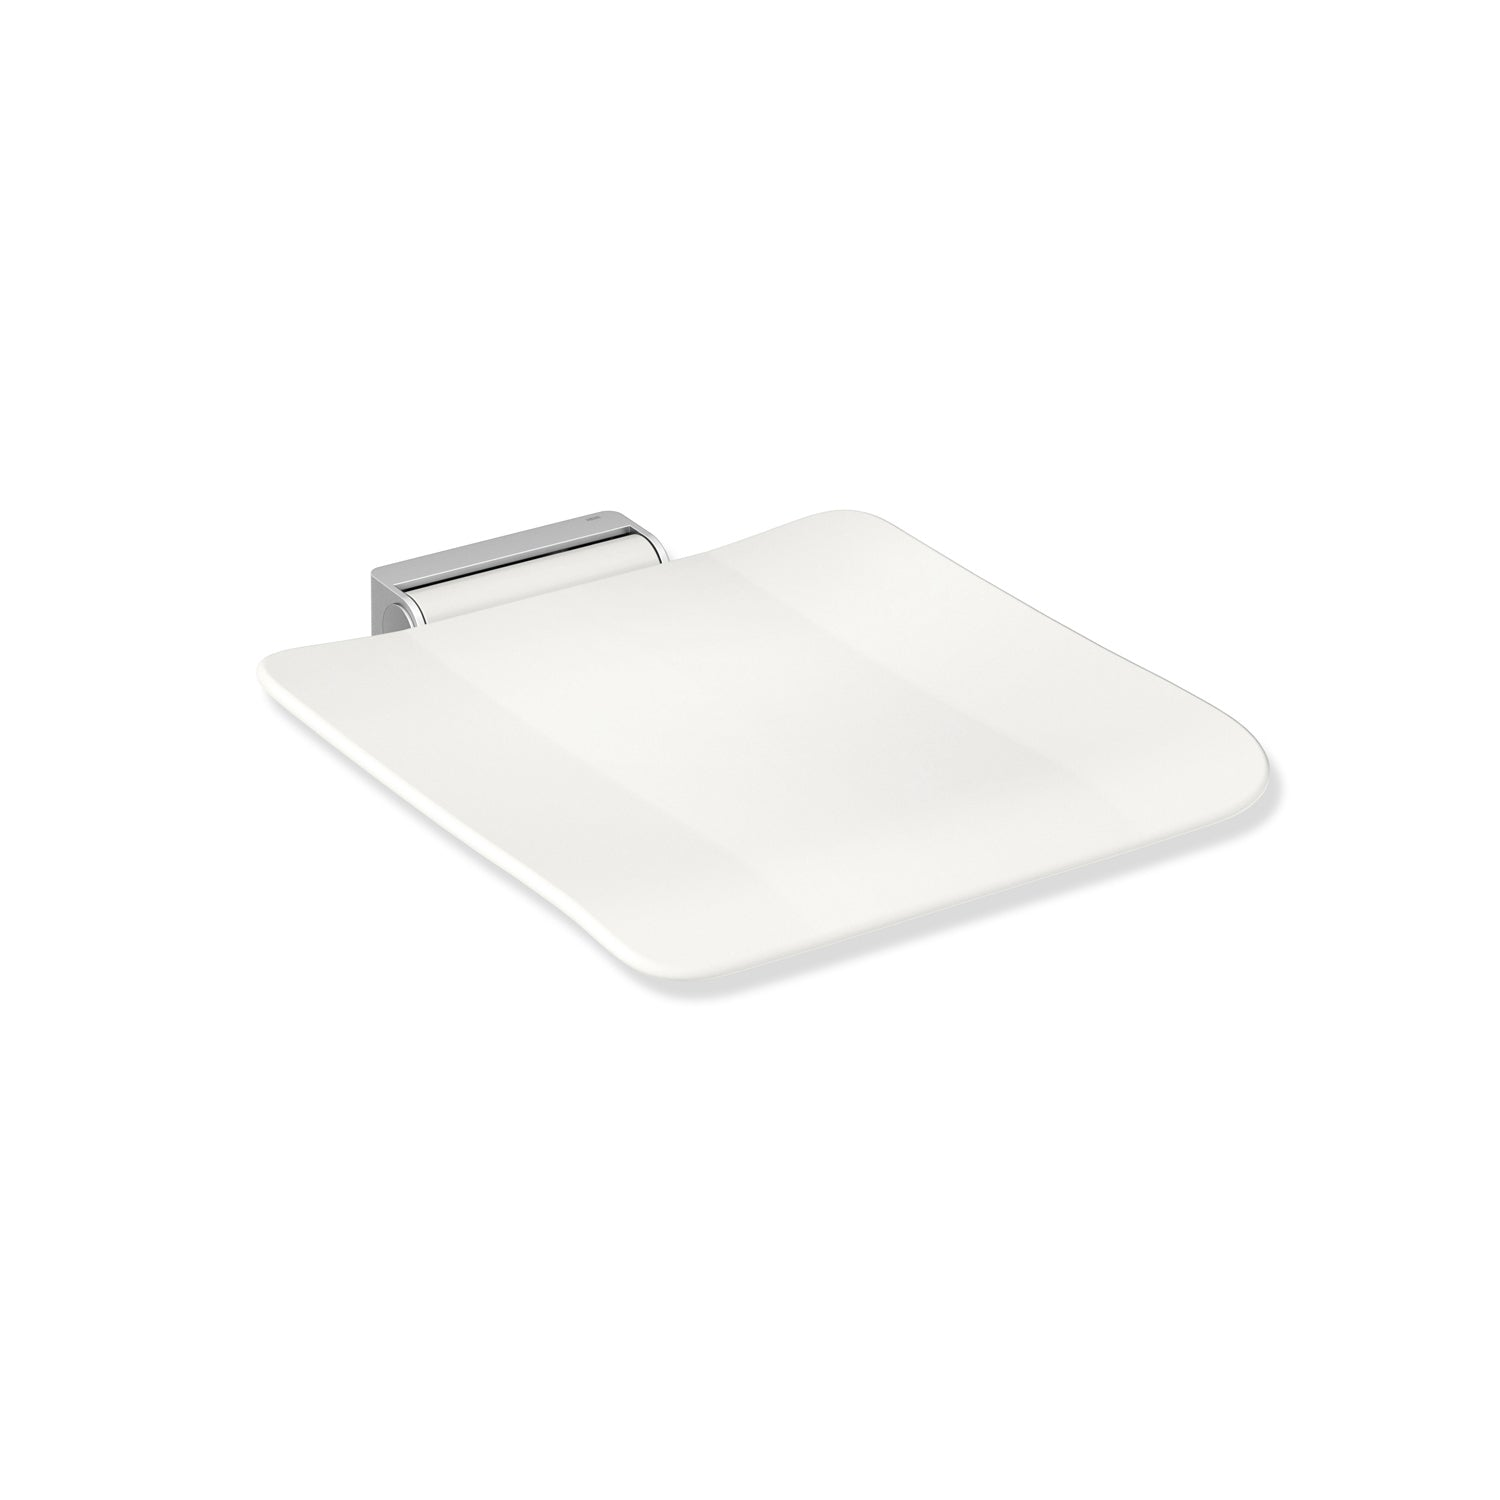 Freestyle Removable Shower Seat with a white seat and satin steel bracket on a white background